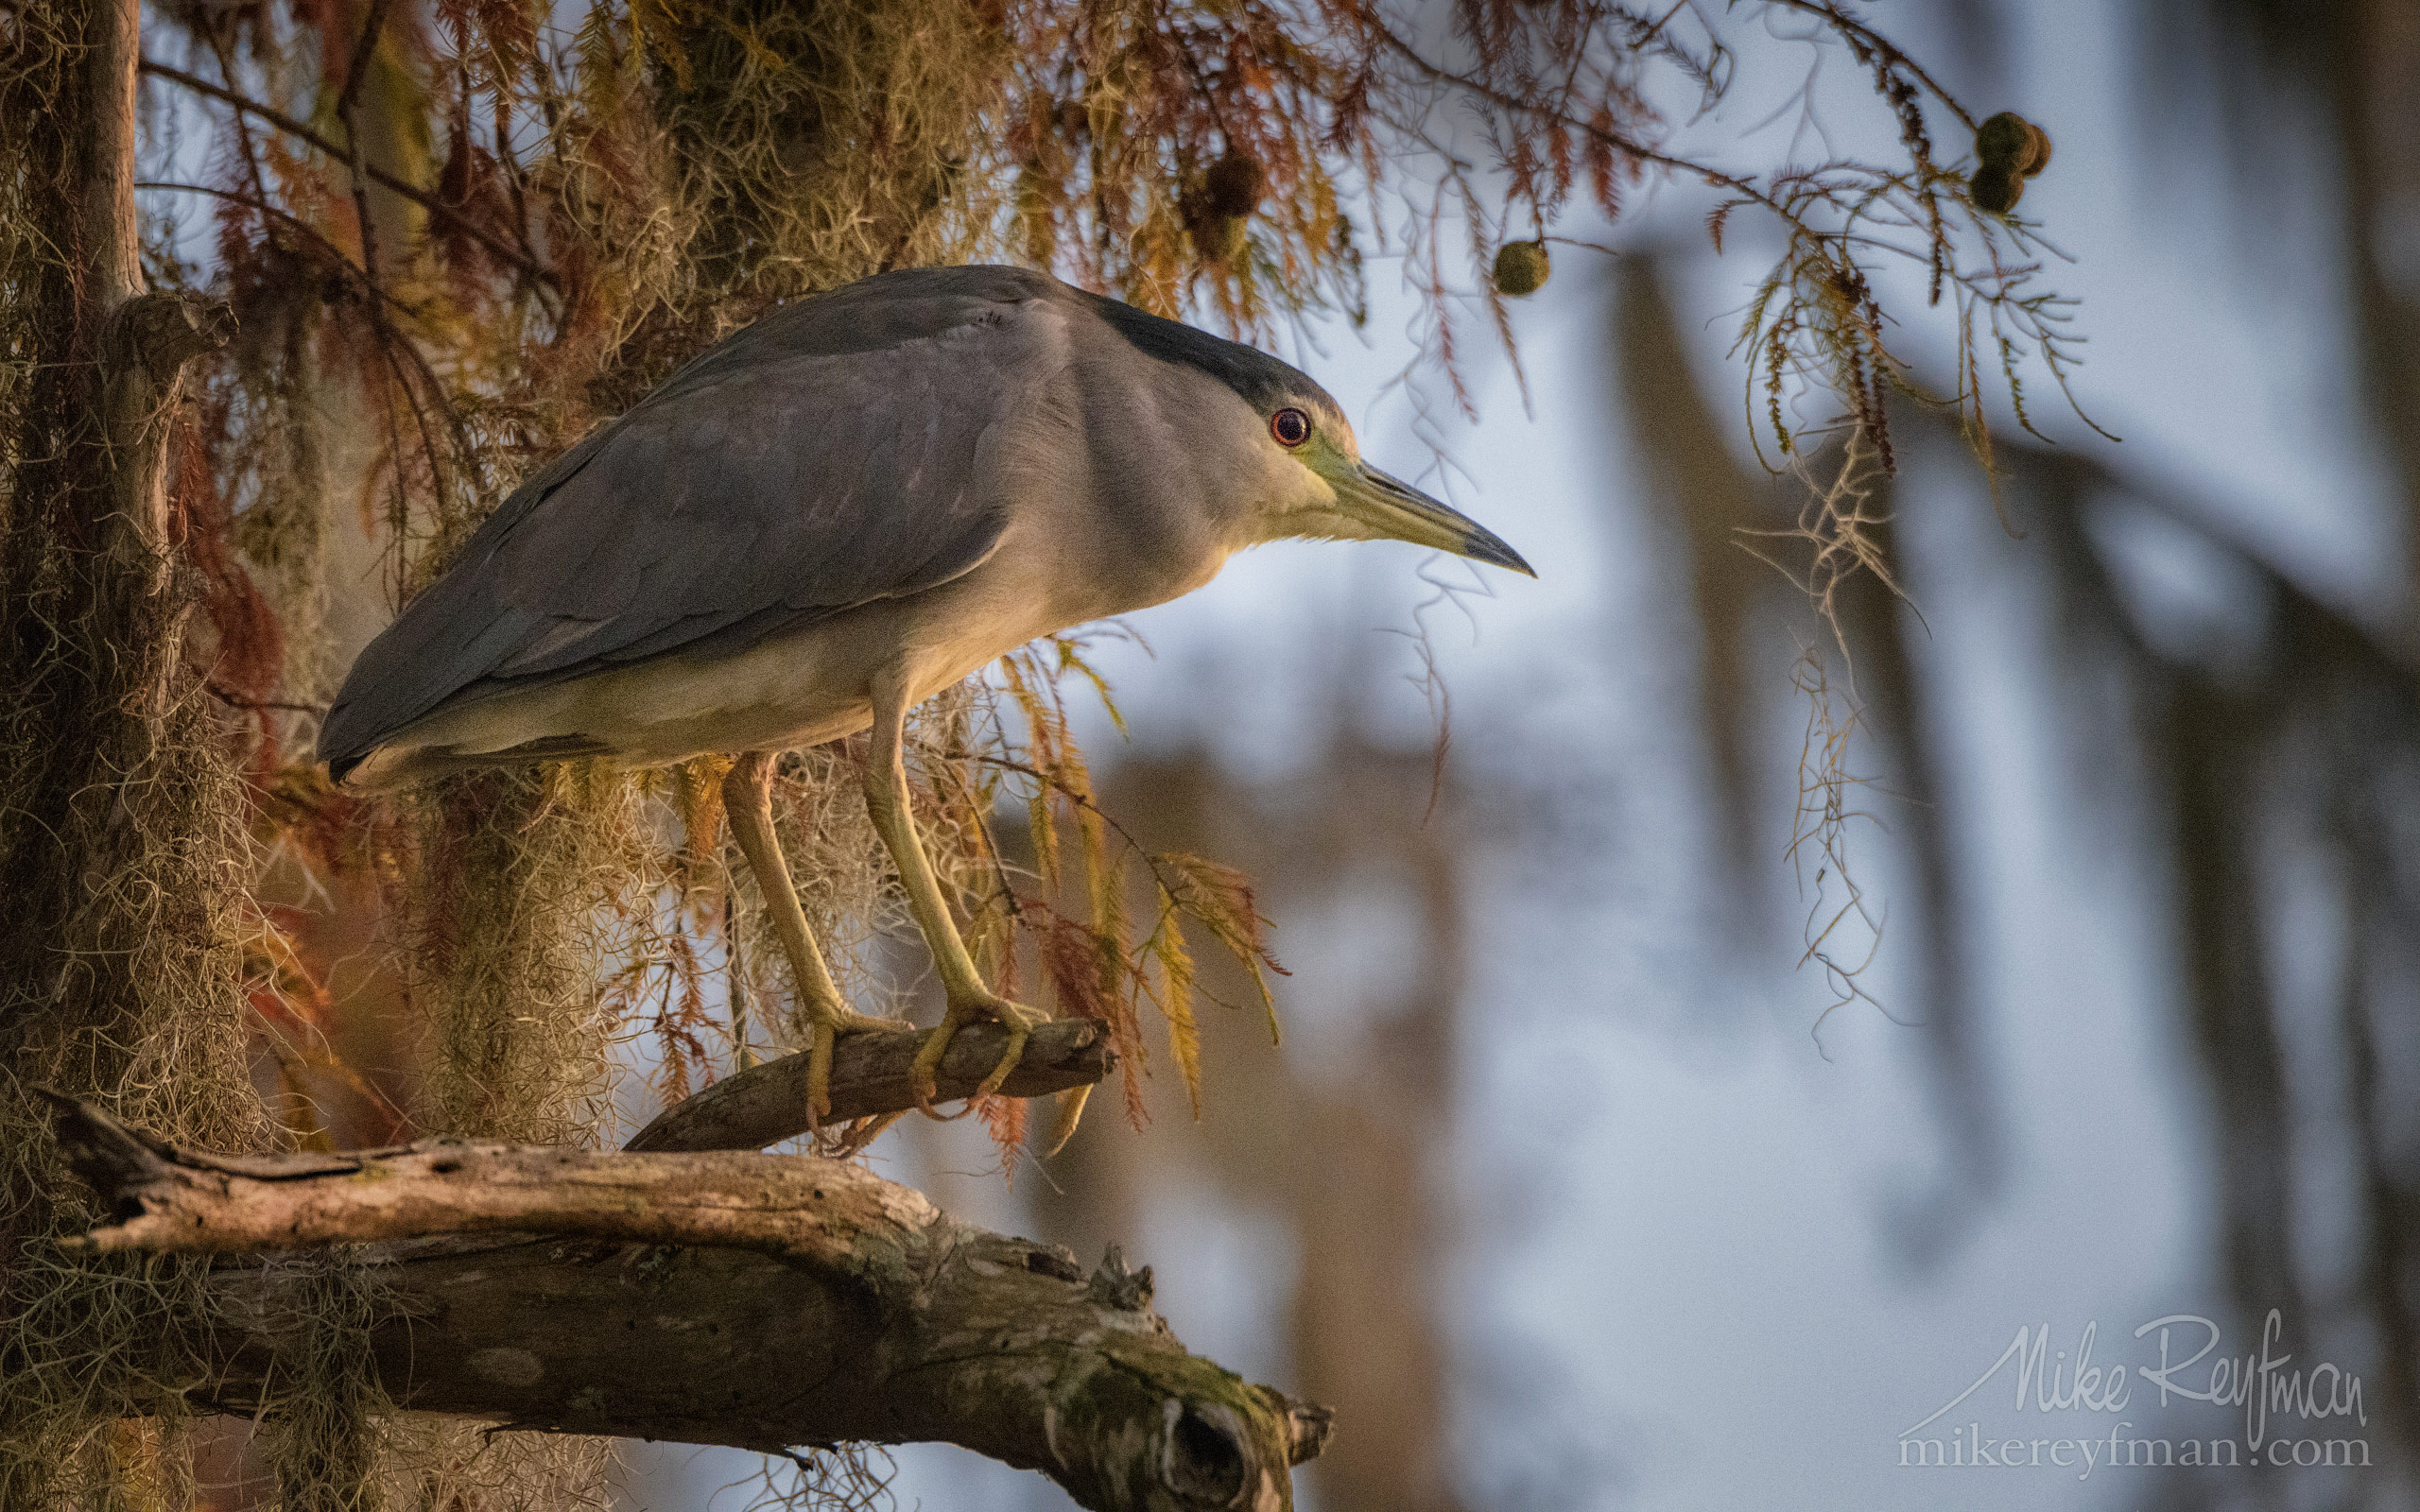 Black-Crowned Night Heron in the Bald Cypress tree. Lake Martin, Louisiana, US 059-LT1-50A4601.jpg - Bold Cypress and Tupelo Trees in the swamps of Atchafalaya River Basin. Caddo, Martin and Fousse Lakes. Texas/Louisiana, USA. - Mike Reyfman Photography